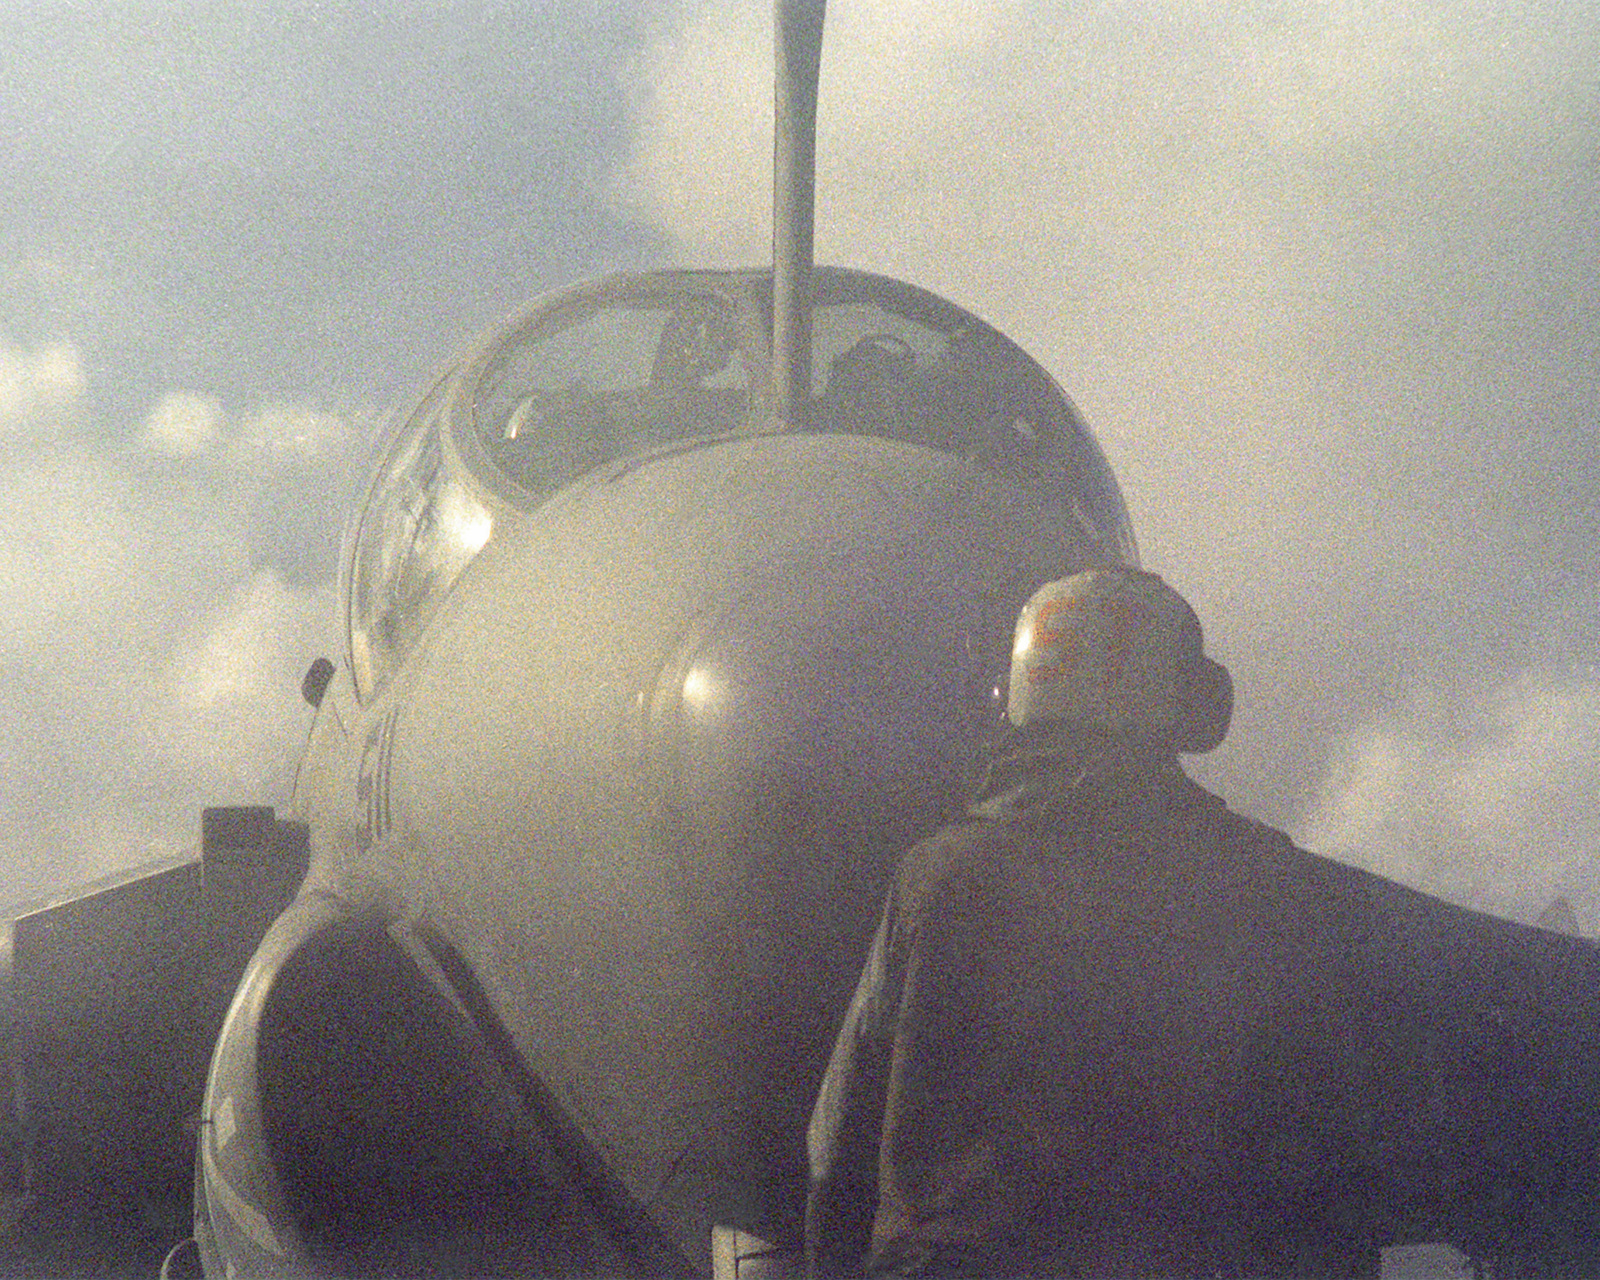 Steam from a catapult obscures a plane handler and the A-6E Intruder aircraft that he is guiding across the flight deck of the aircraft carrier USS FORRESTAL (CV-59) during the allied forces exercise Team Work '88